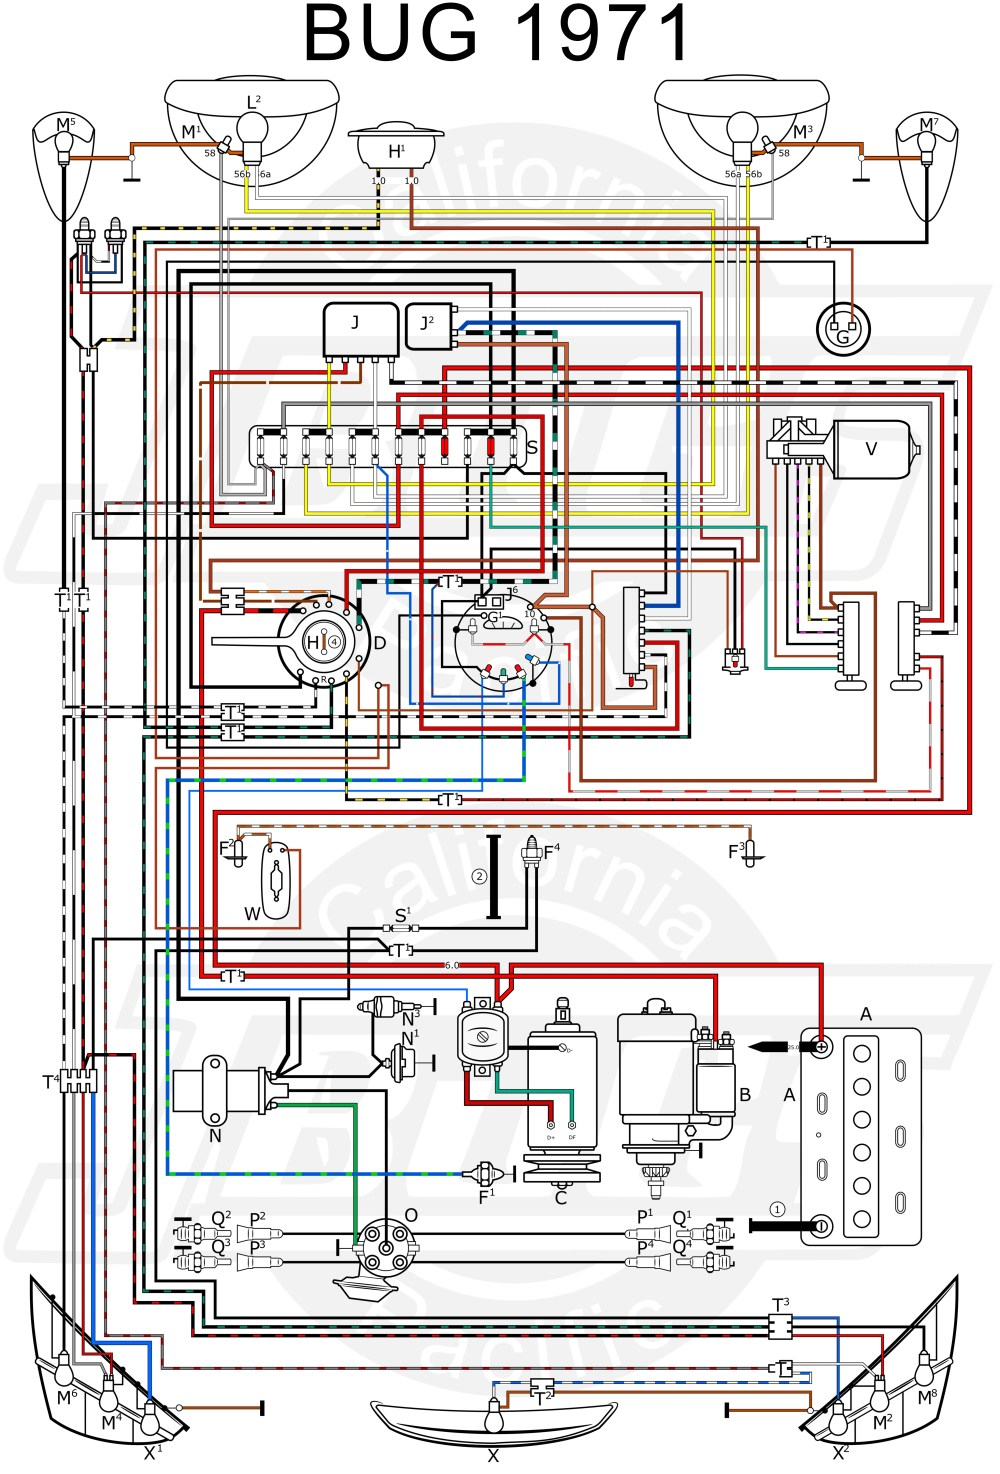 medium resolution of 1975 volkswagen beetle wiring diagram wiring diagram note 1975 vw beetle alternator wiring diagram